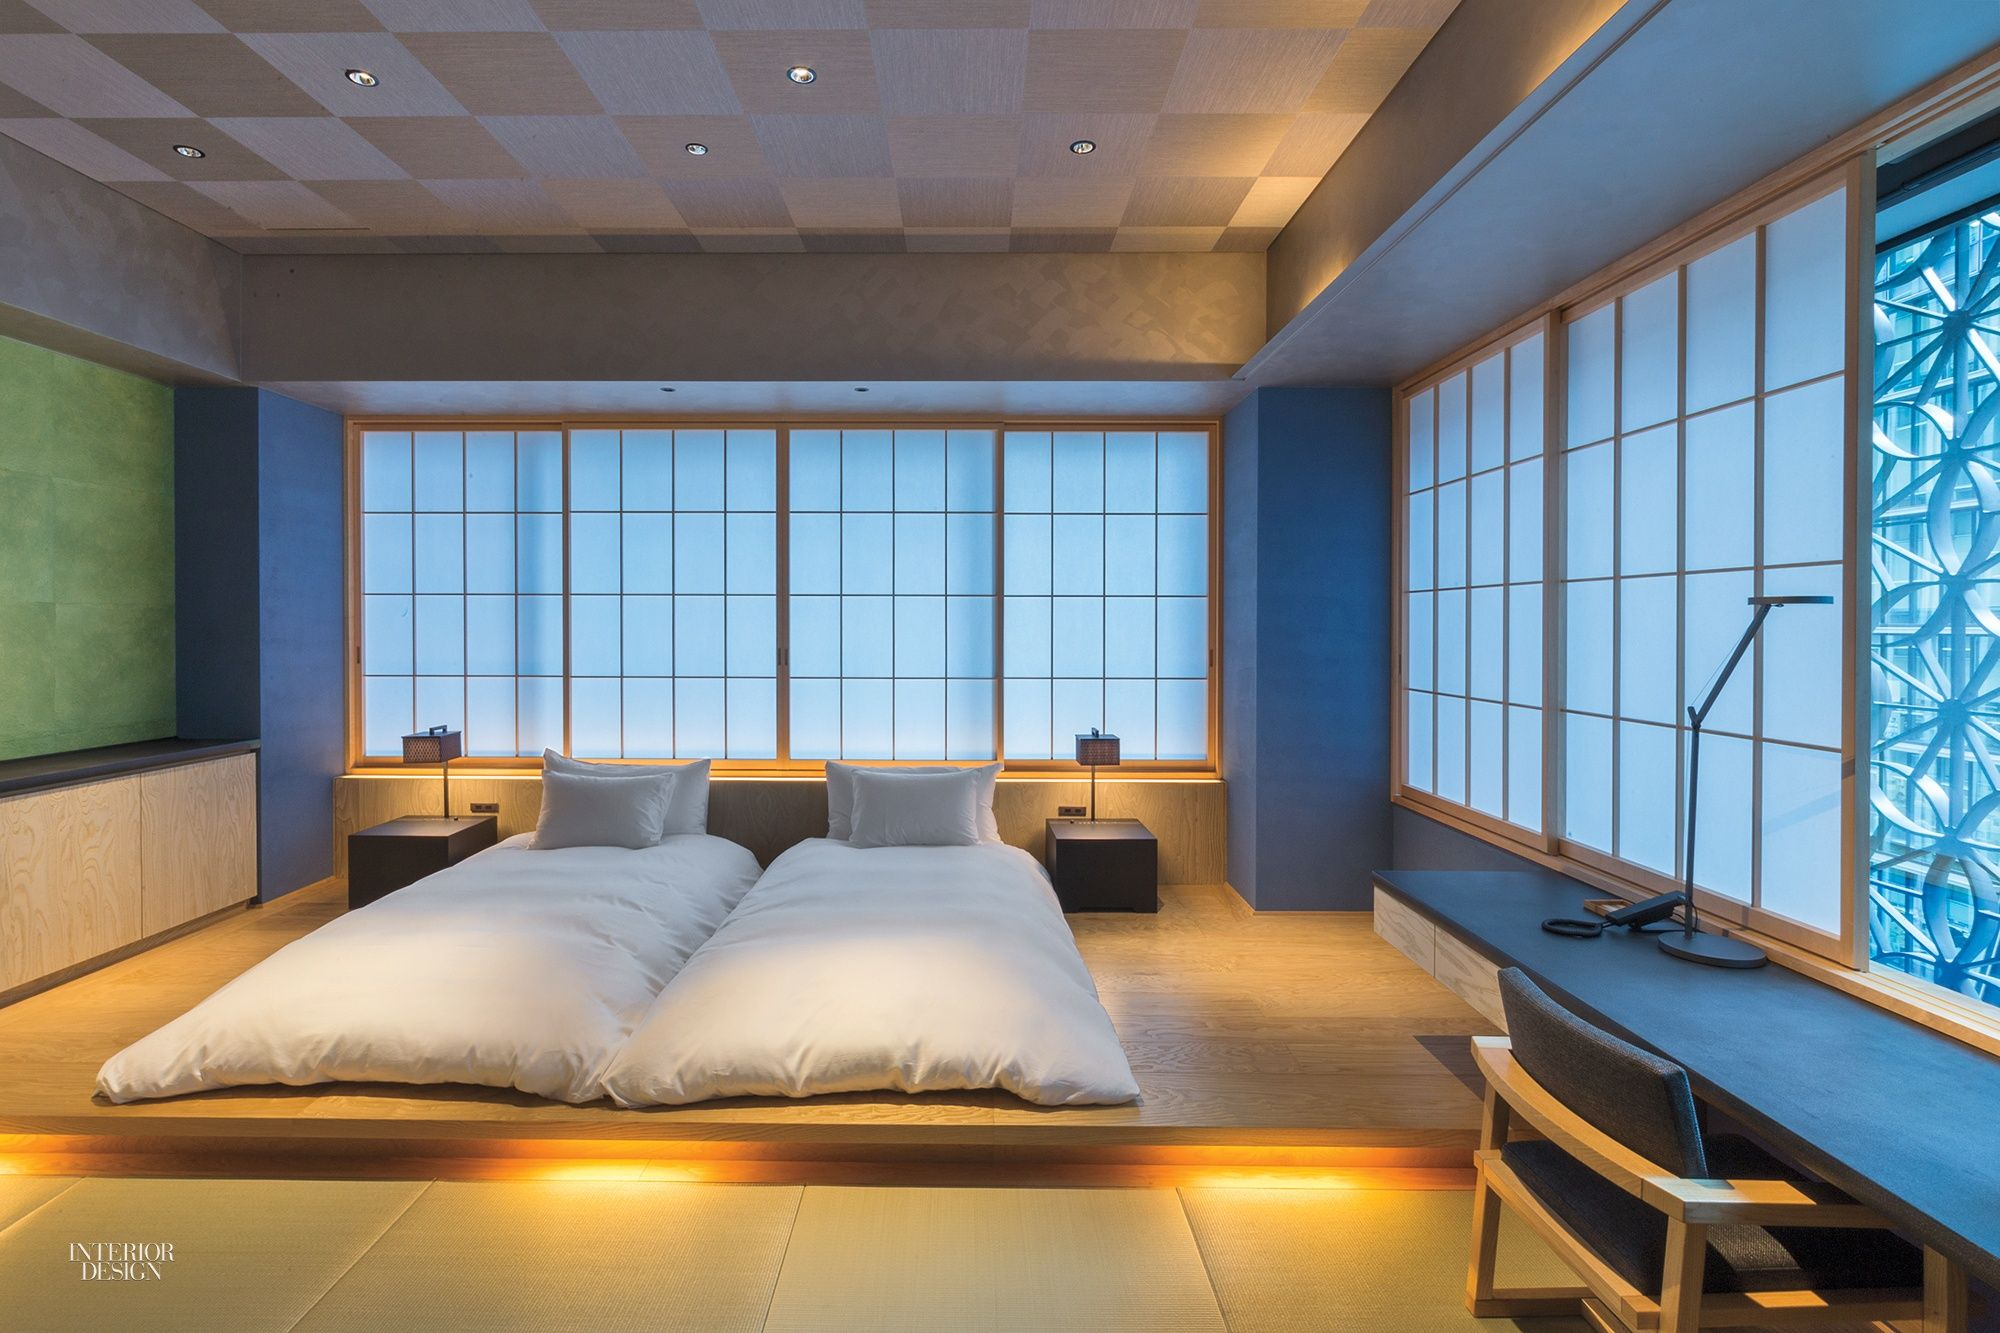 Hoshinoya Tokyo Spa Hotel By Rie Azuma Reinvents The Traditional Japanese Ryokan Japanese Style Bedroom Japanese Bedroom Japanese Home Design